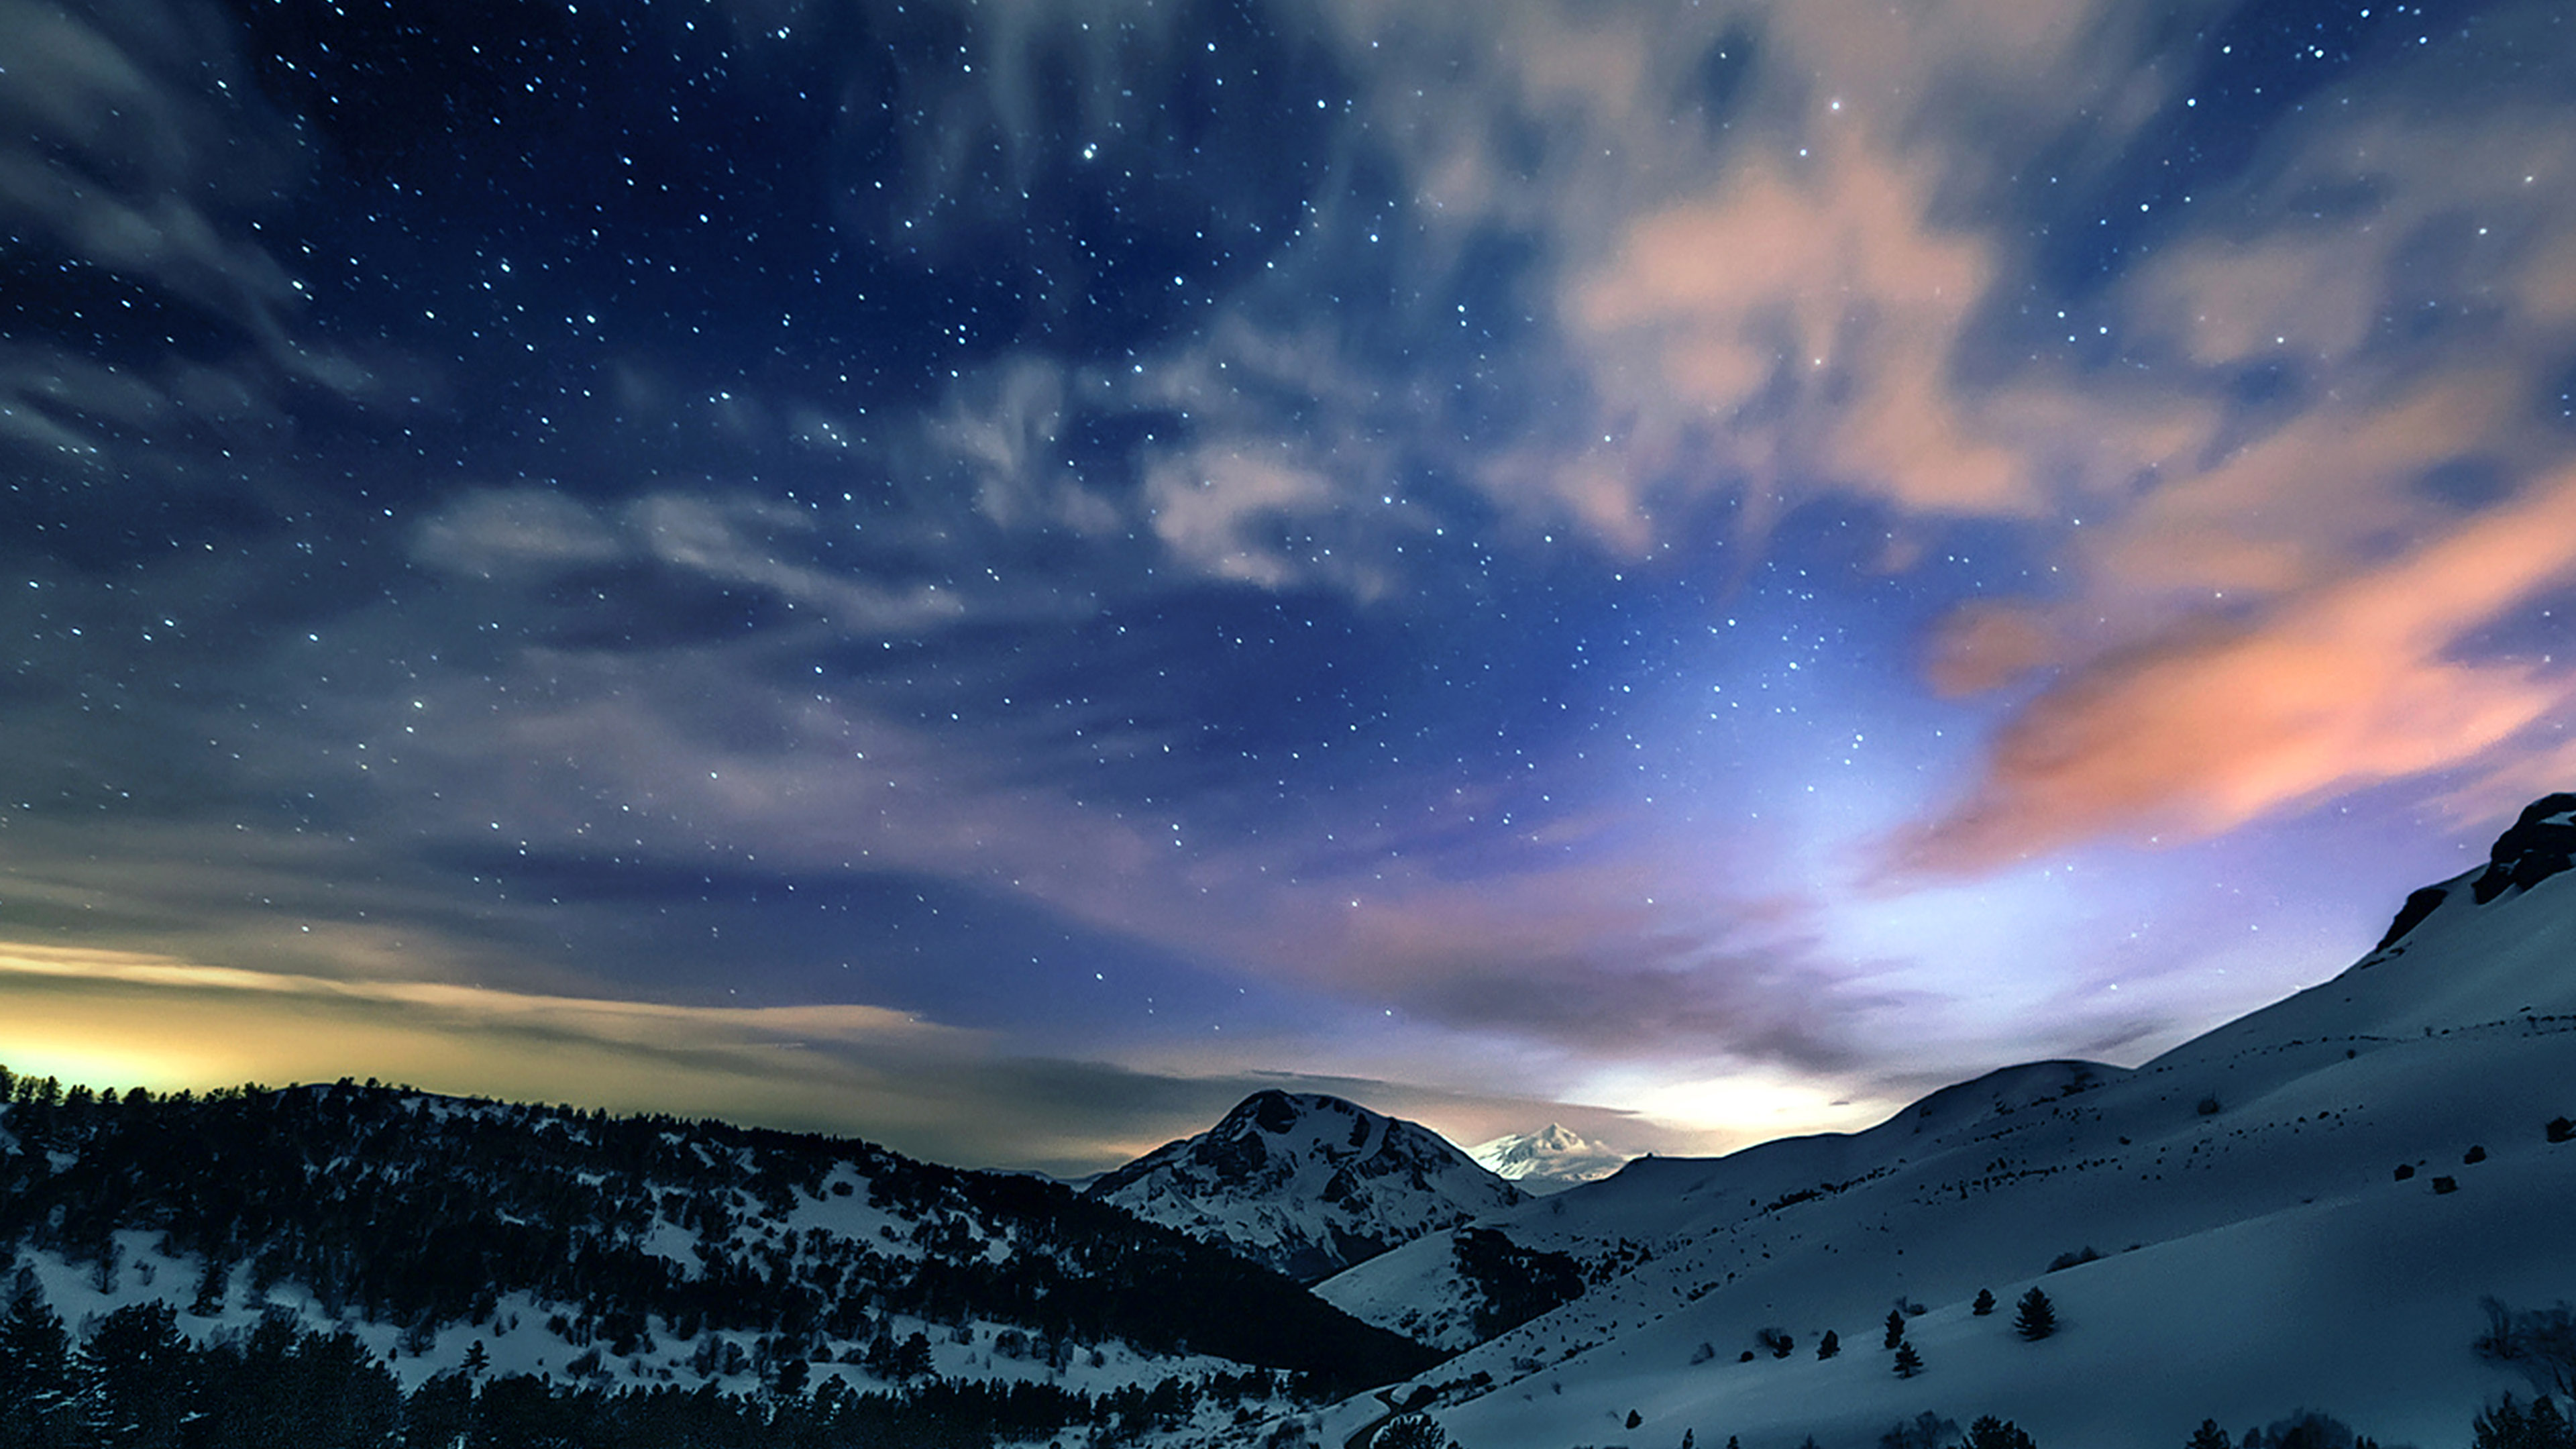 3d Wallpaper S8 Mk78 Aurora Star Sky Snow Mountain Winter Nature Papers Co